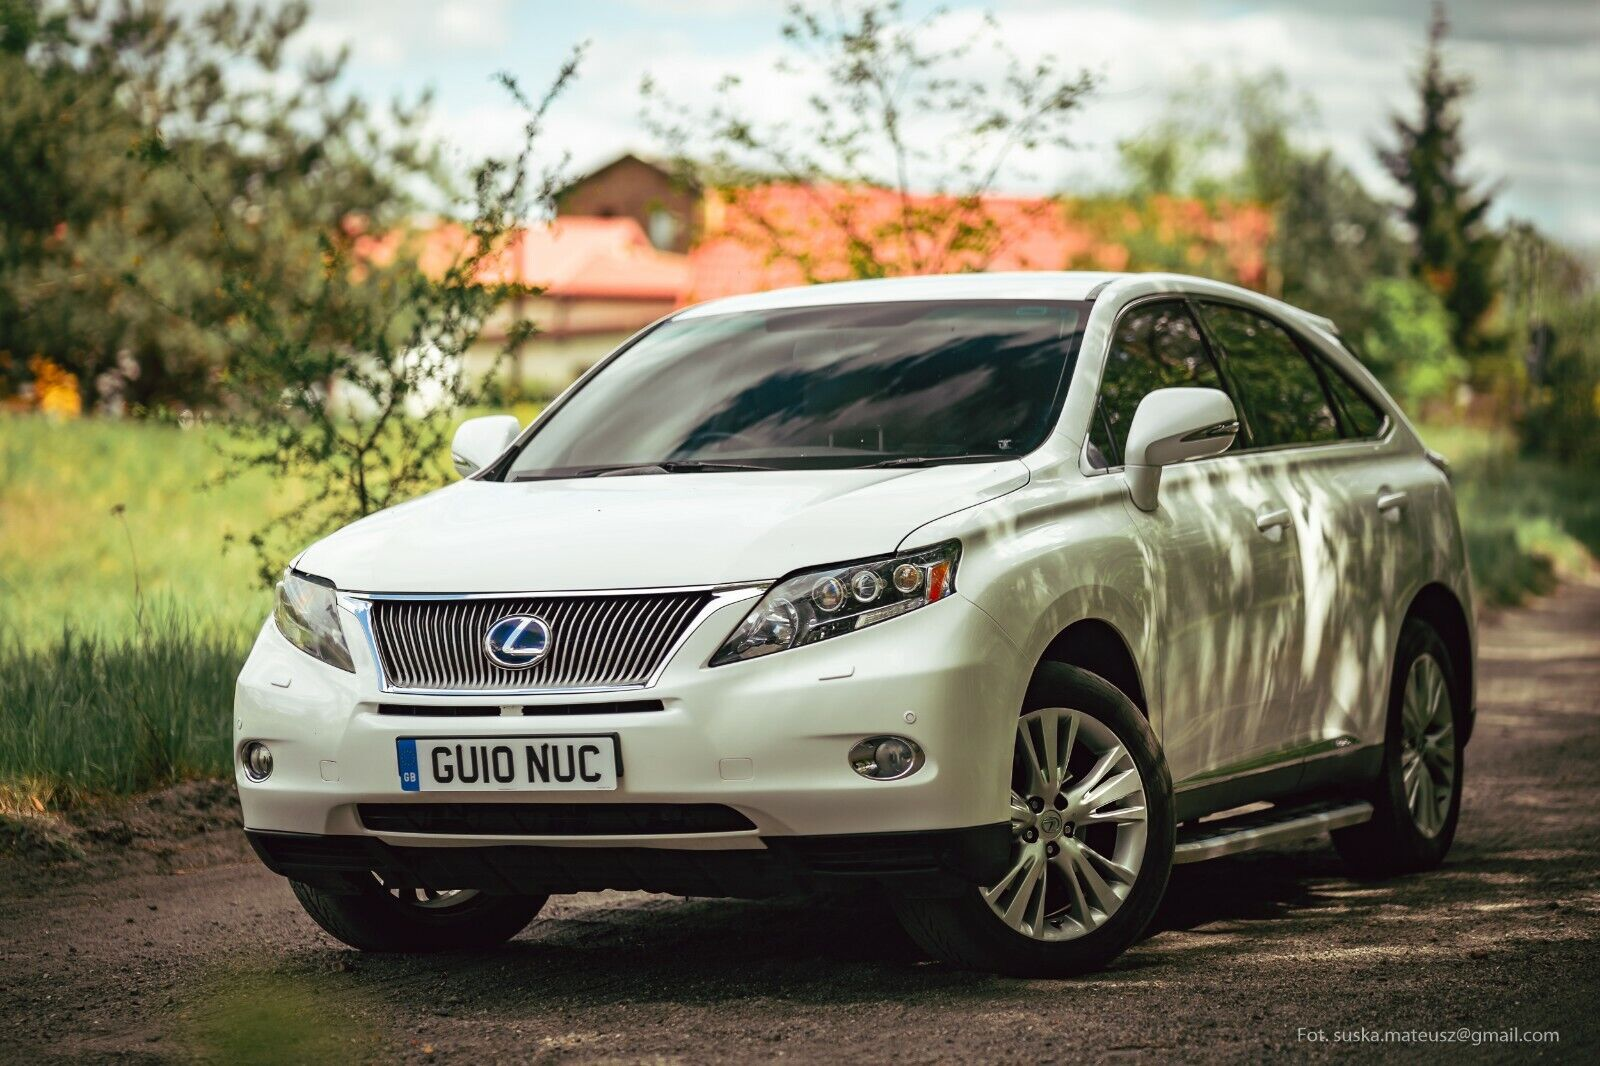 Lexus-RX-450H-Hybrid-35-Petrol-LPG-Excellent-condition-Fully-loaded